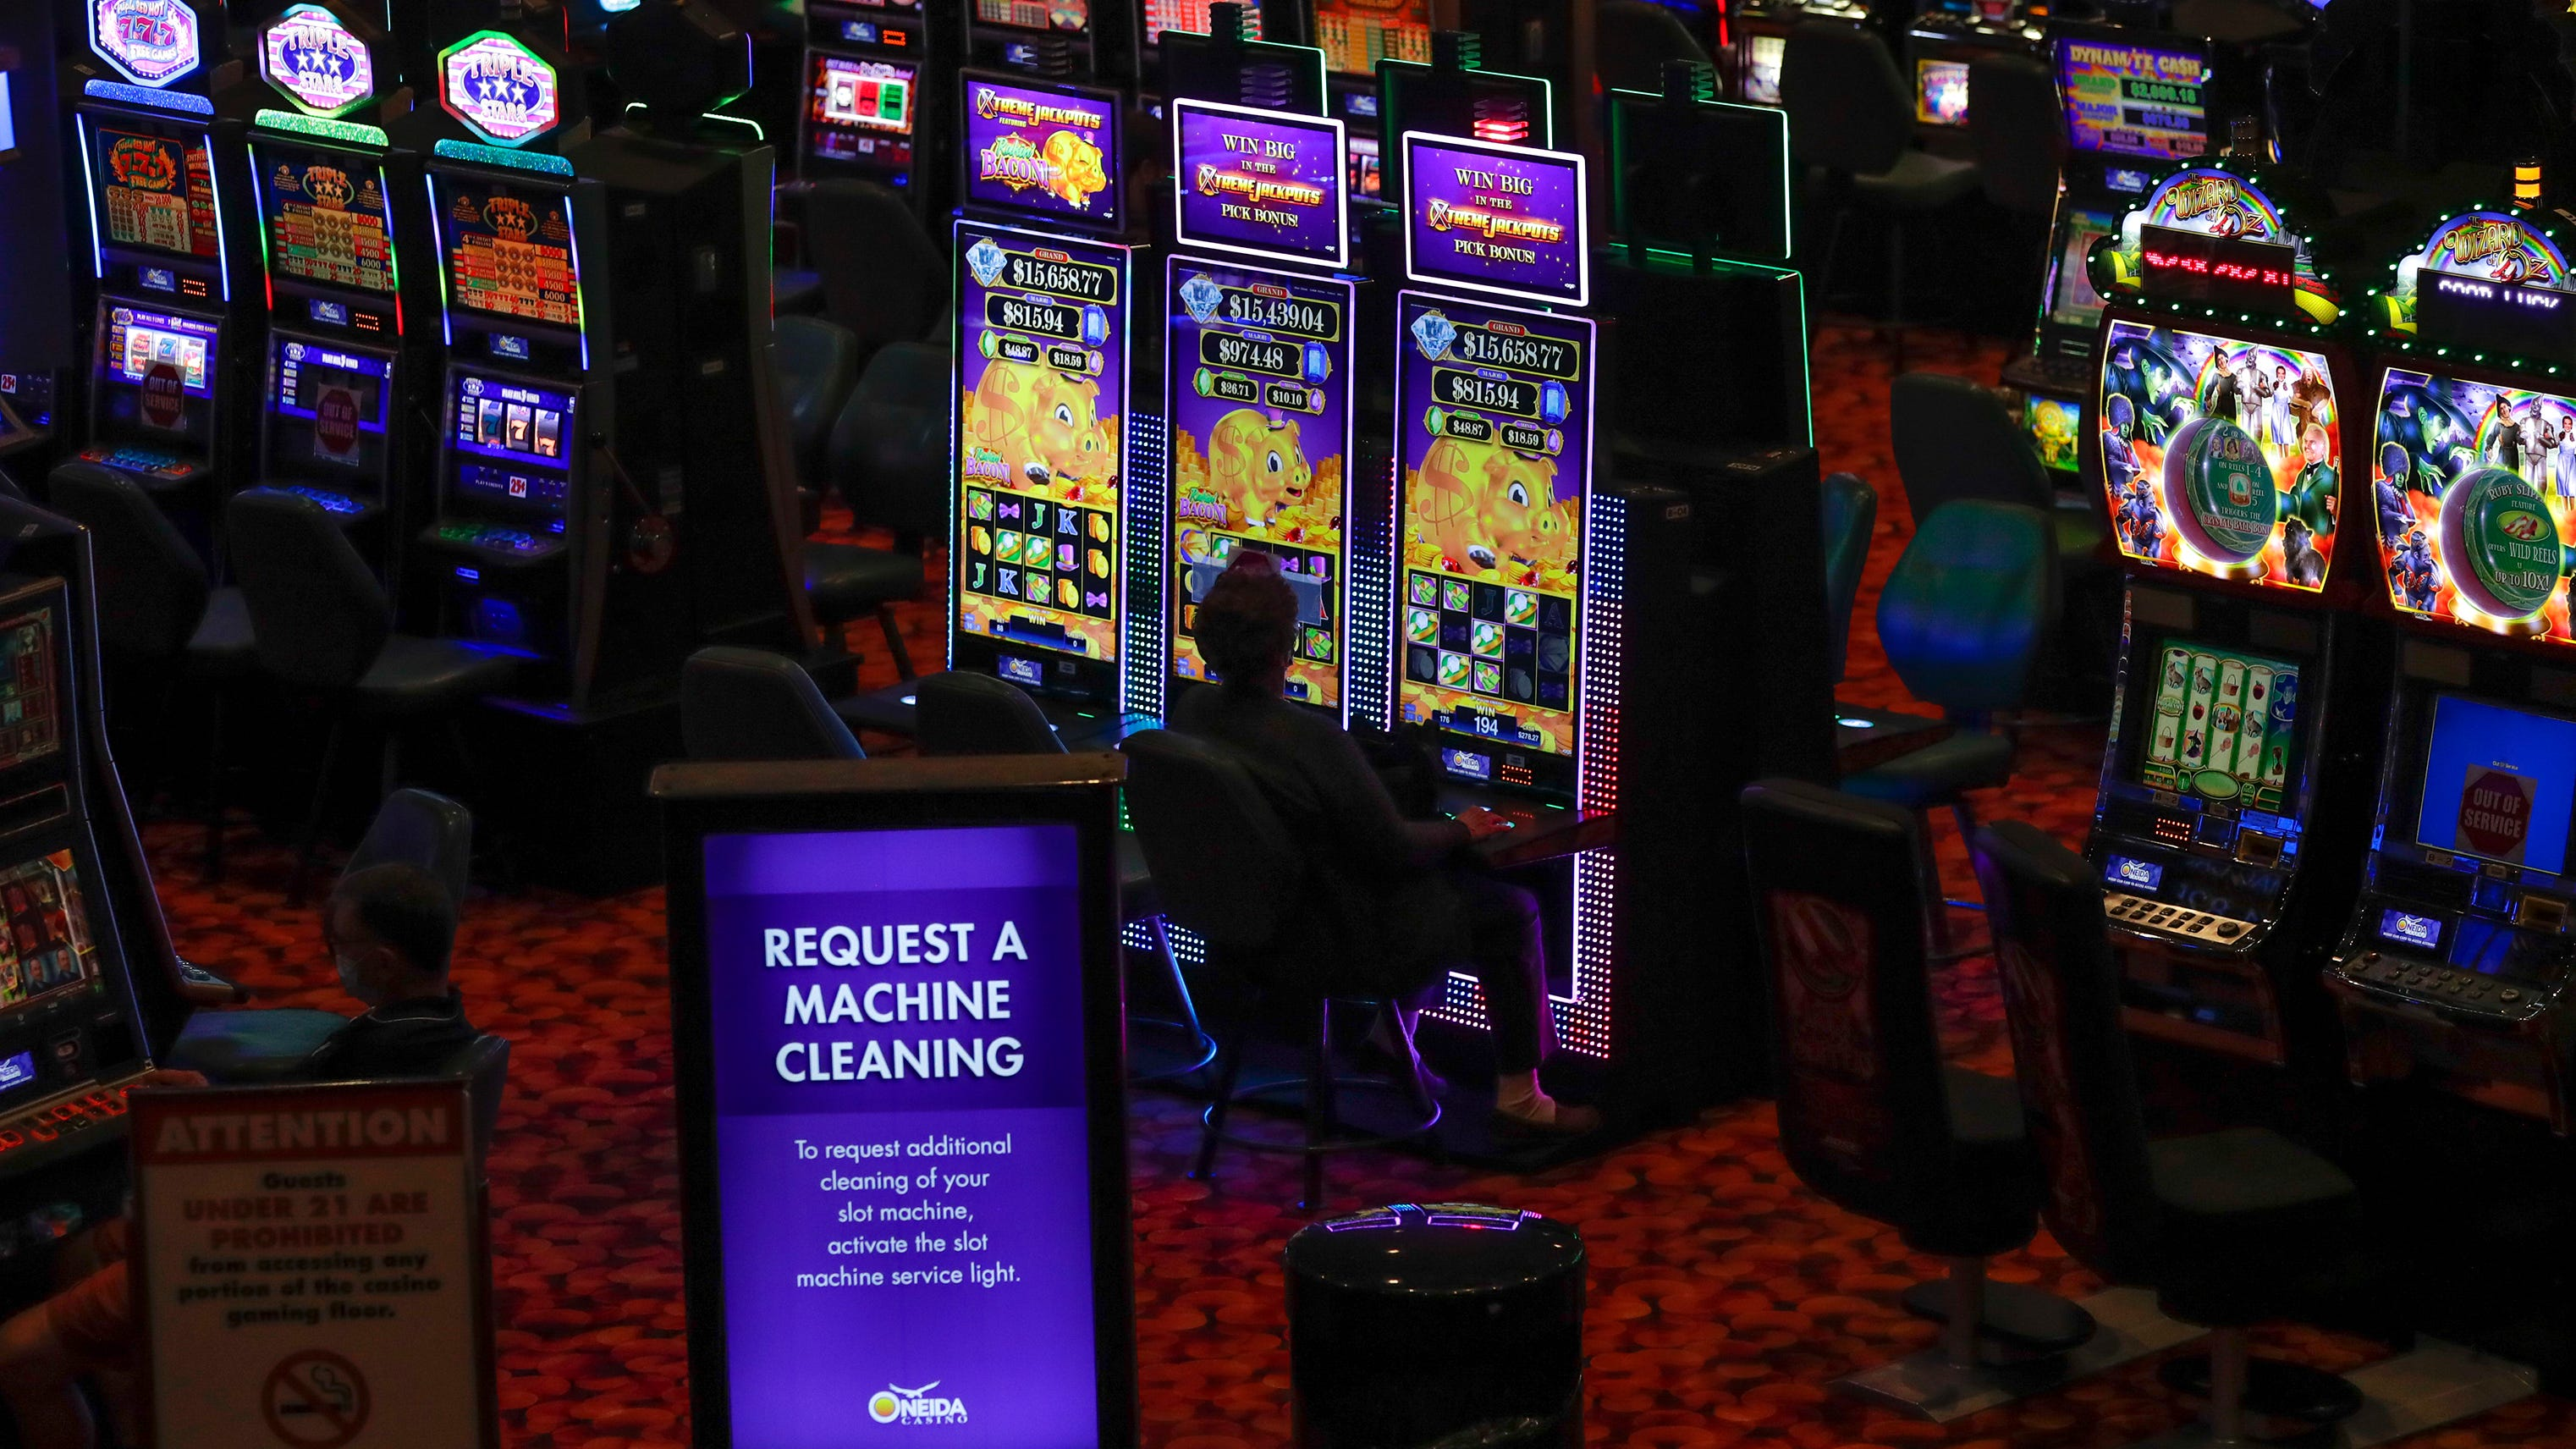 Gambling returns: After being closed for two months, Oneida casino reopens